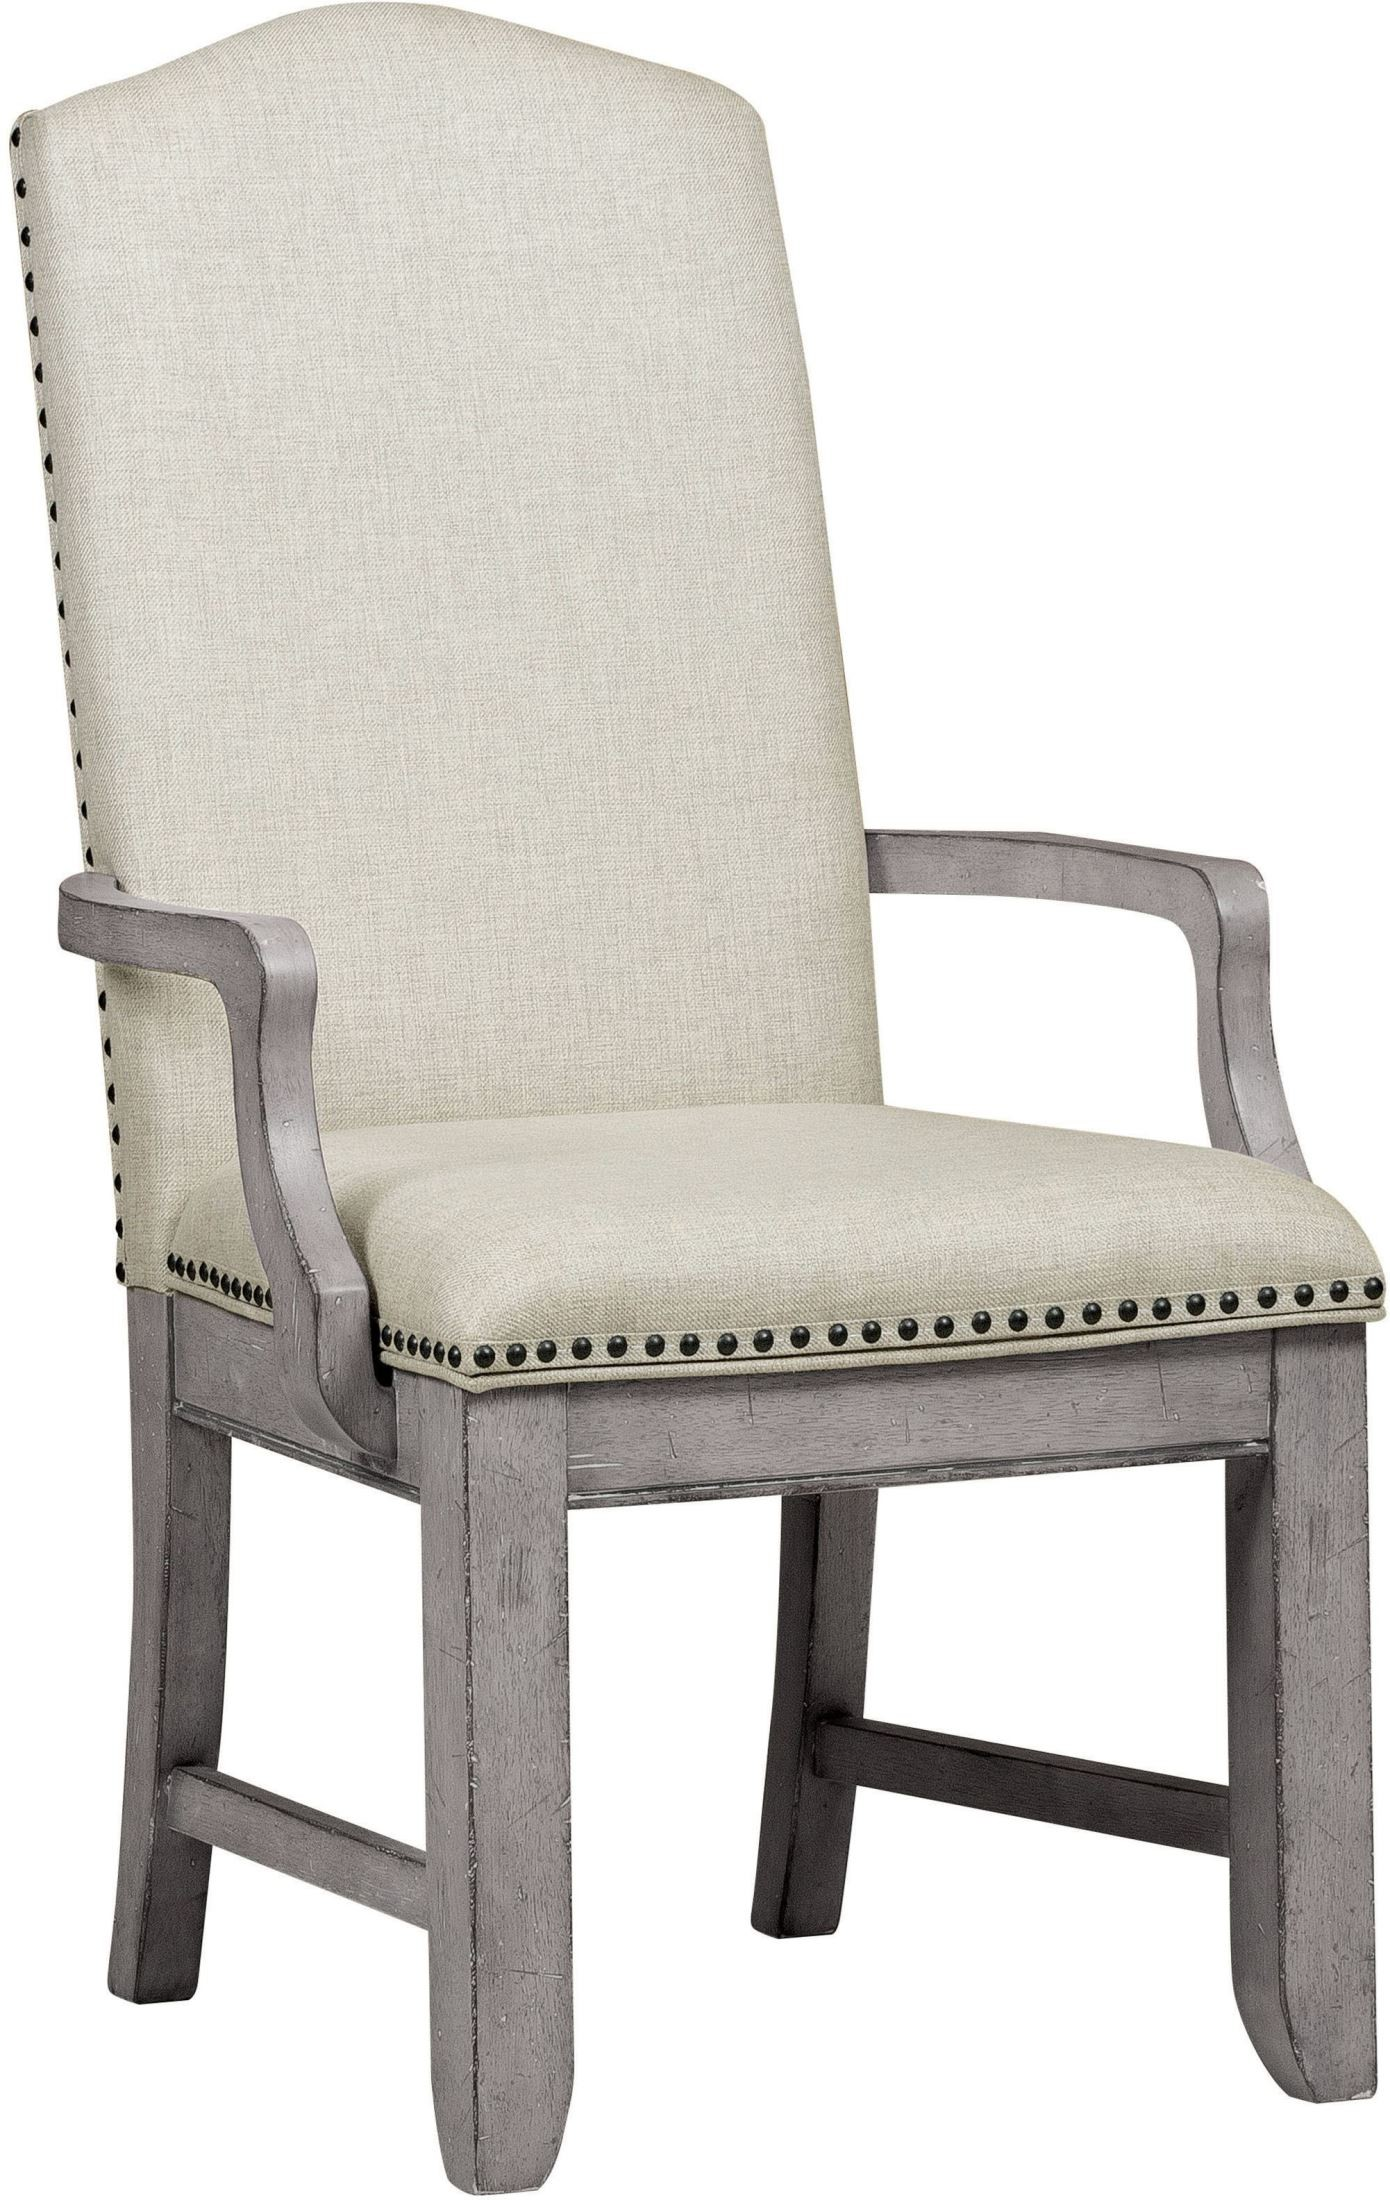 Grey Upholstered Chair Prospect Hill Gray Upholstered Arm Chair S082 157 Samuel